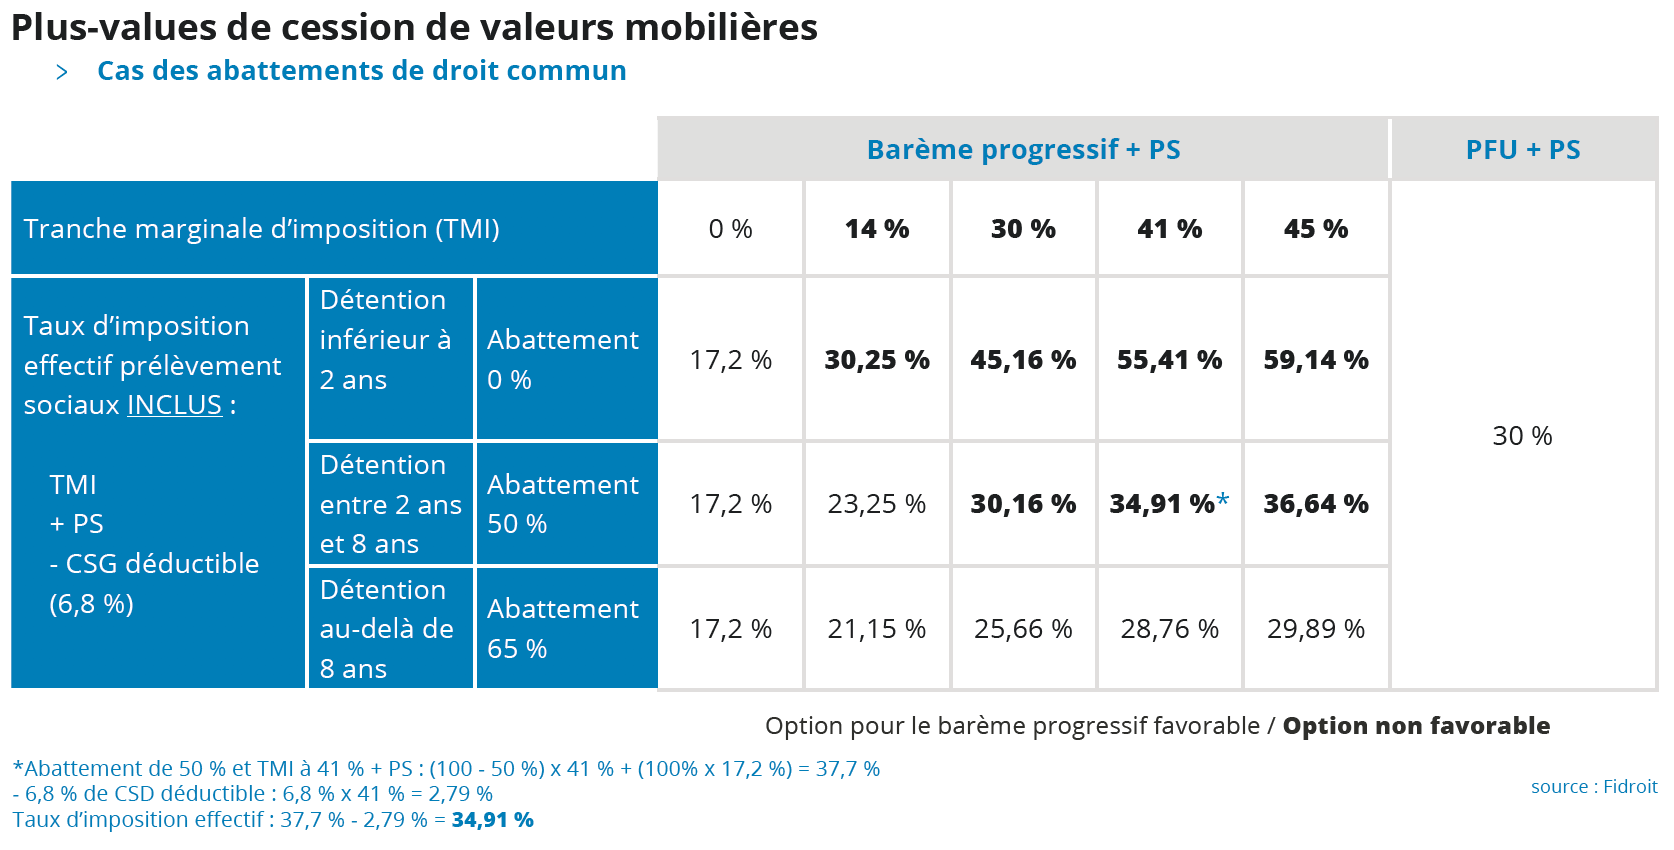 Options pour les plus-values